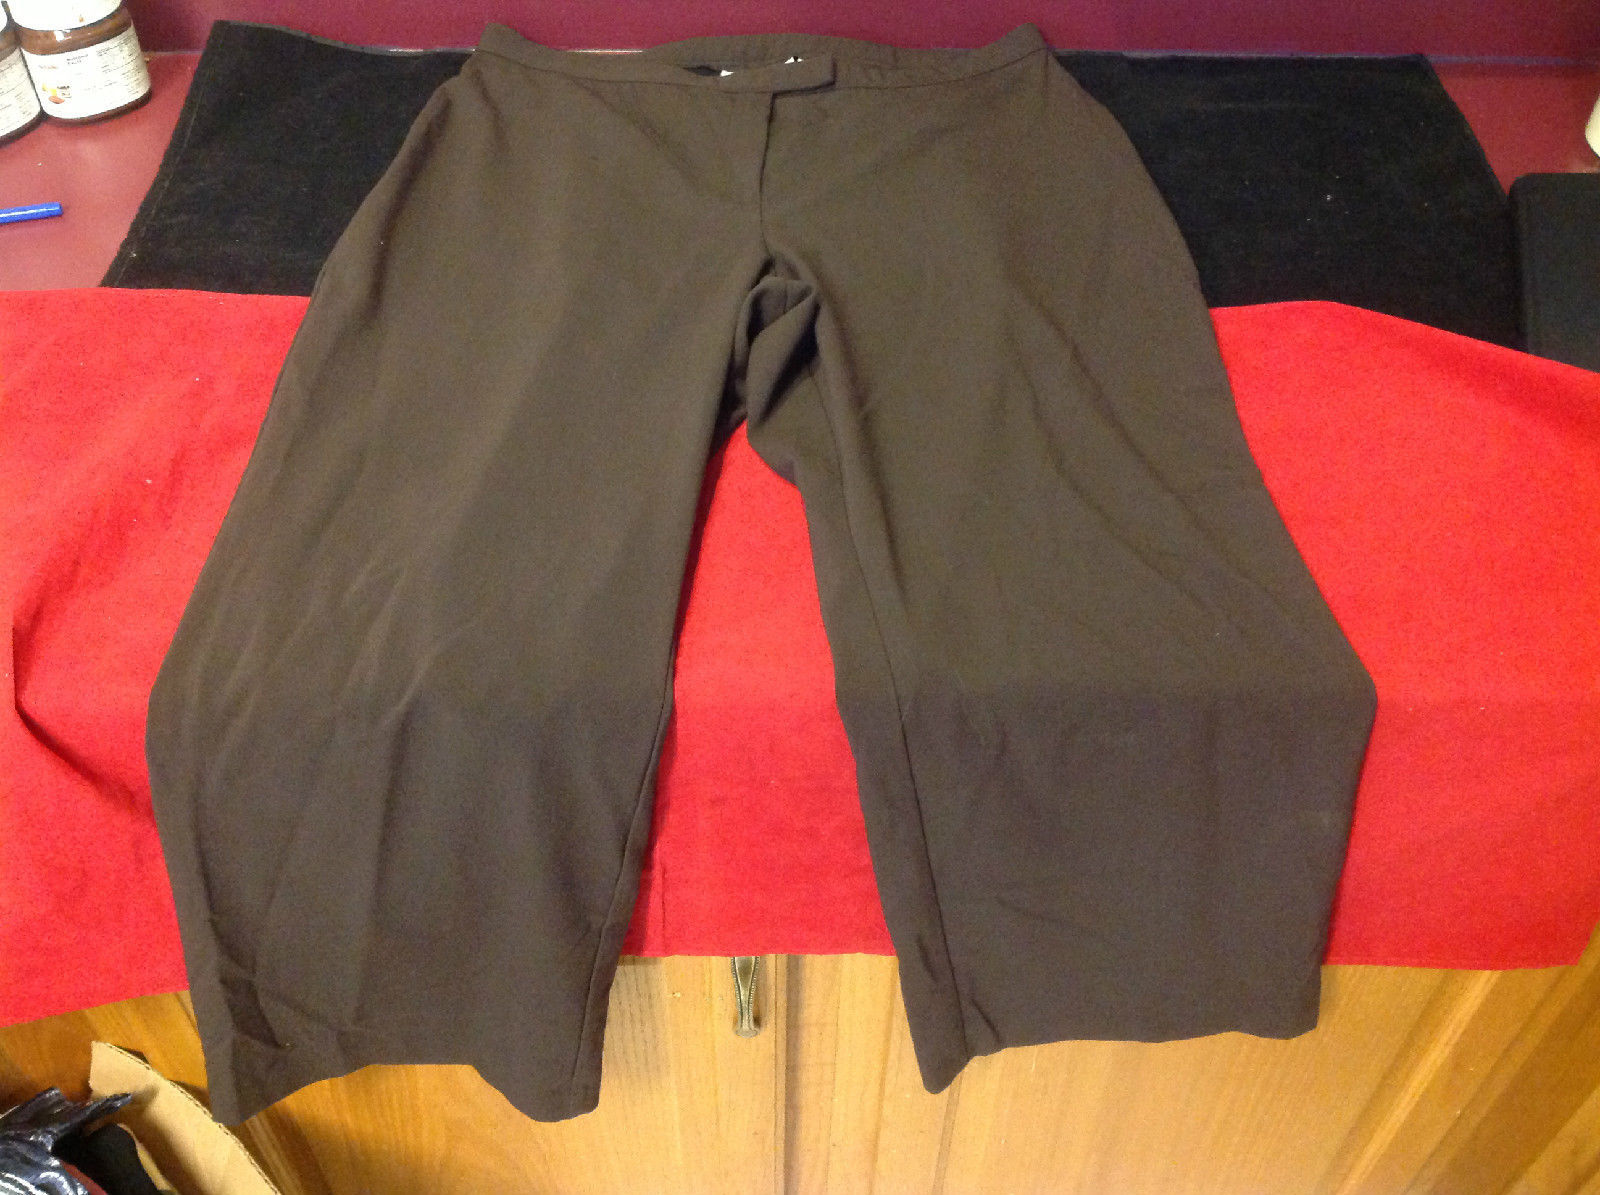 Sag Harbor Women's Stretch Pants Brown Colored Size 18W